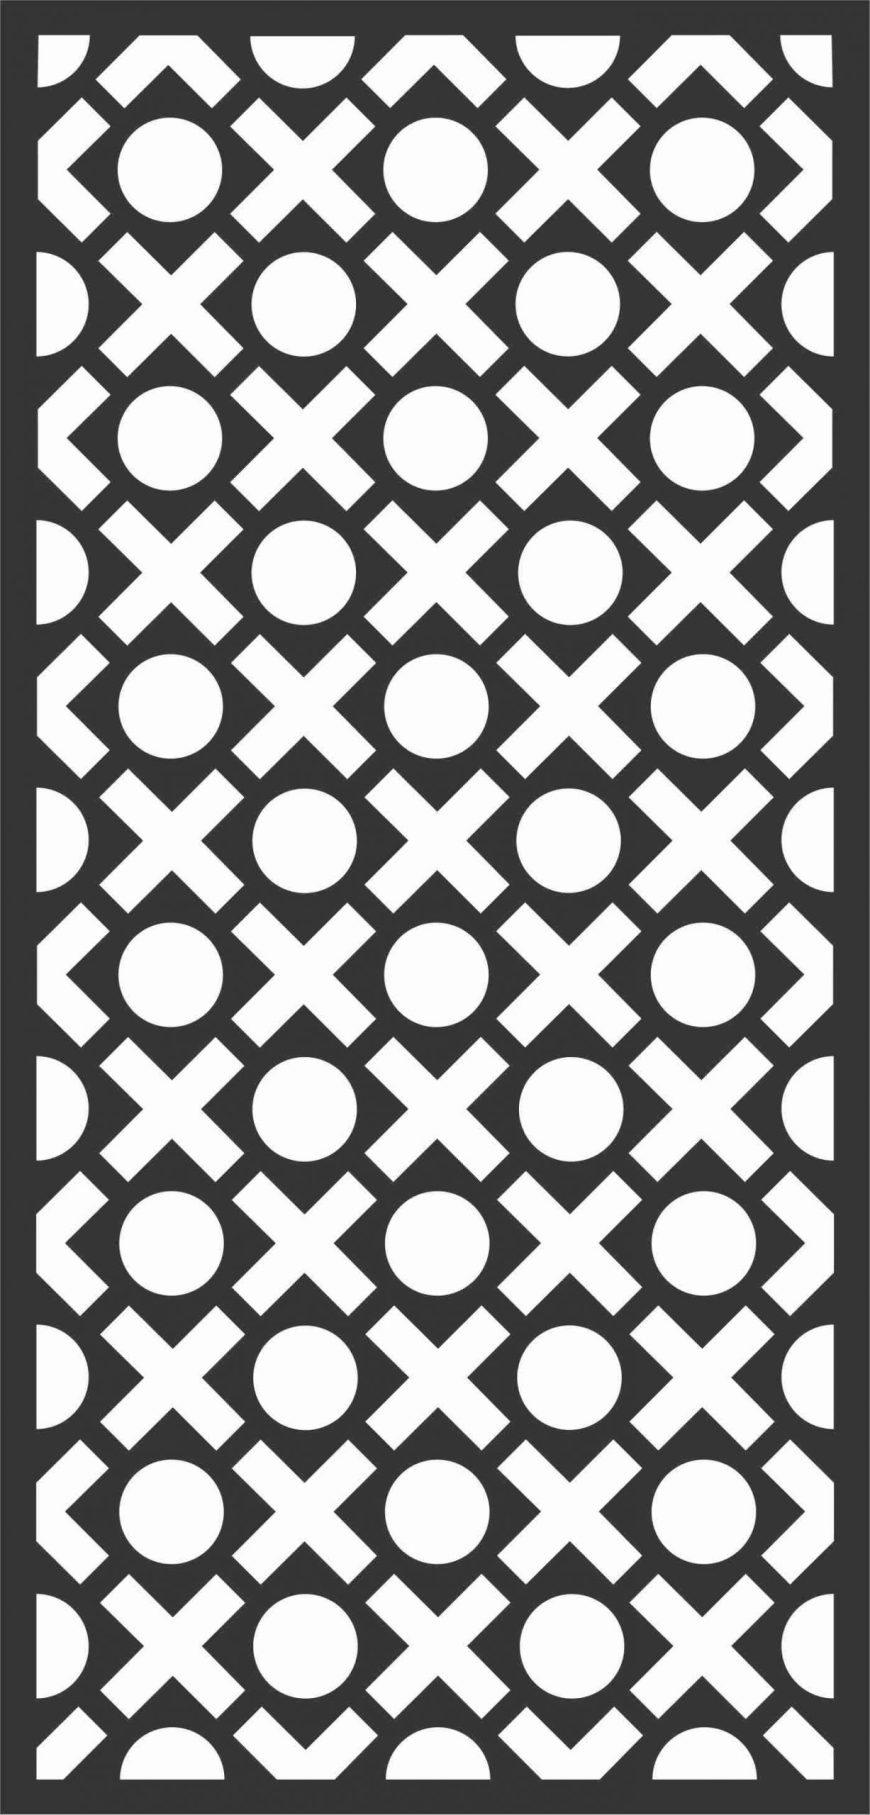 Floral Screen Patterns Design 93 Free DXF File